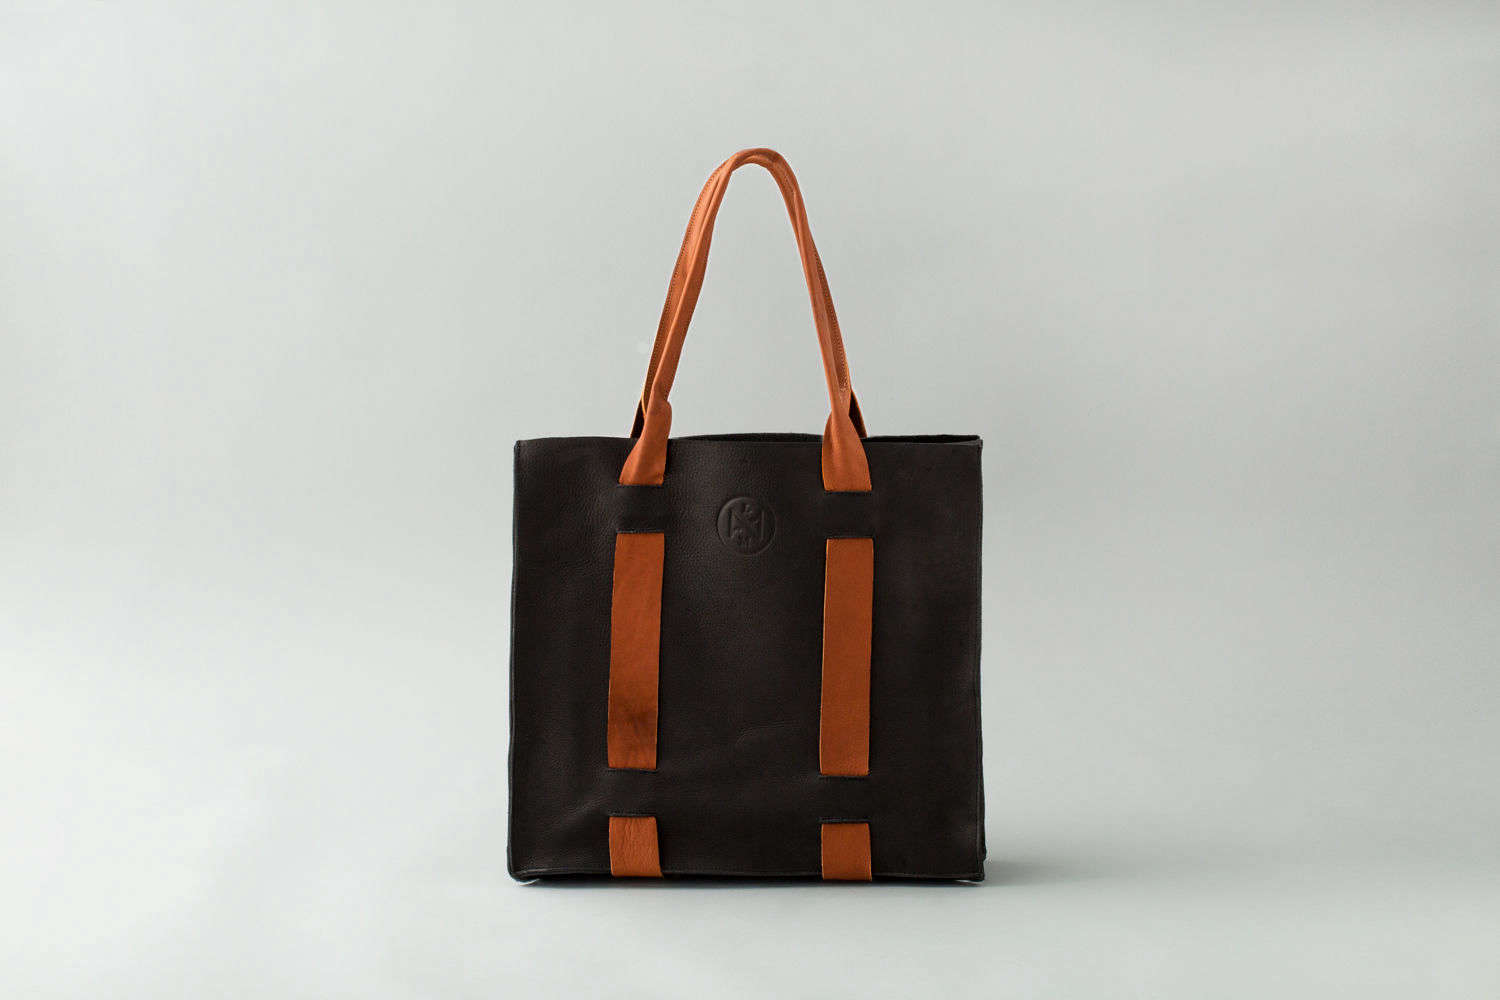 The Tote Bag is made completely of black and vegetable-tanned leather.